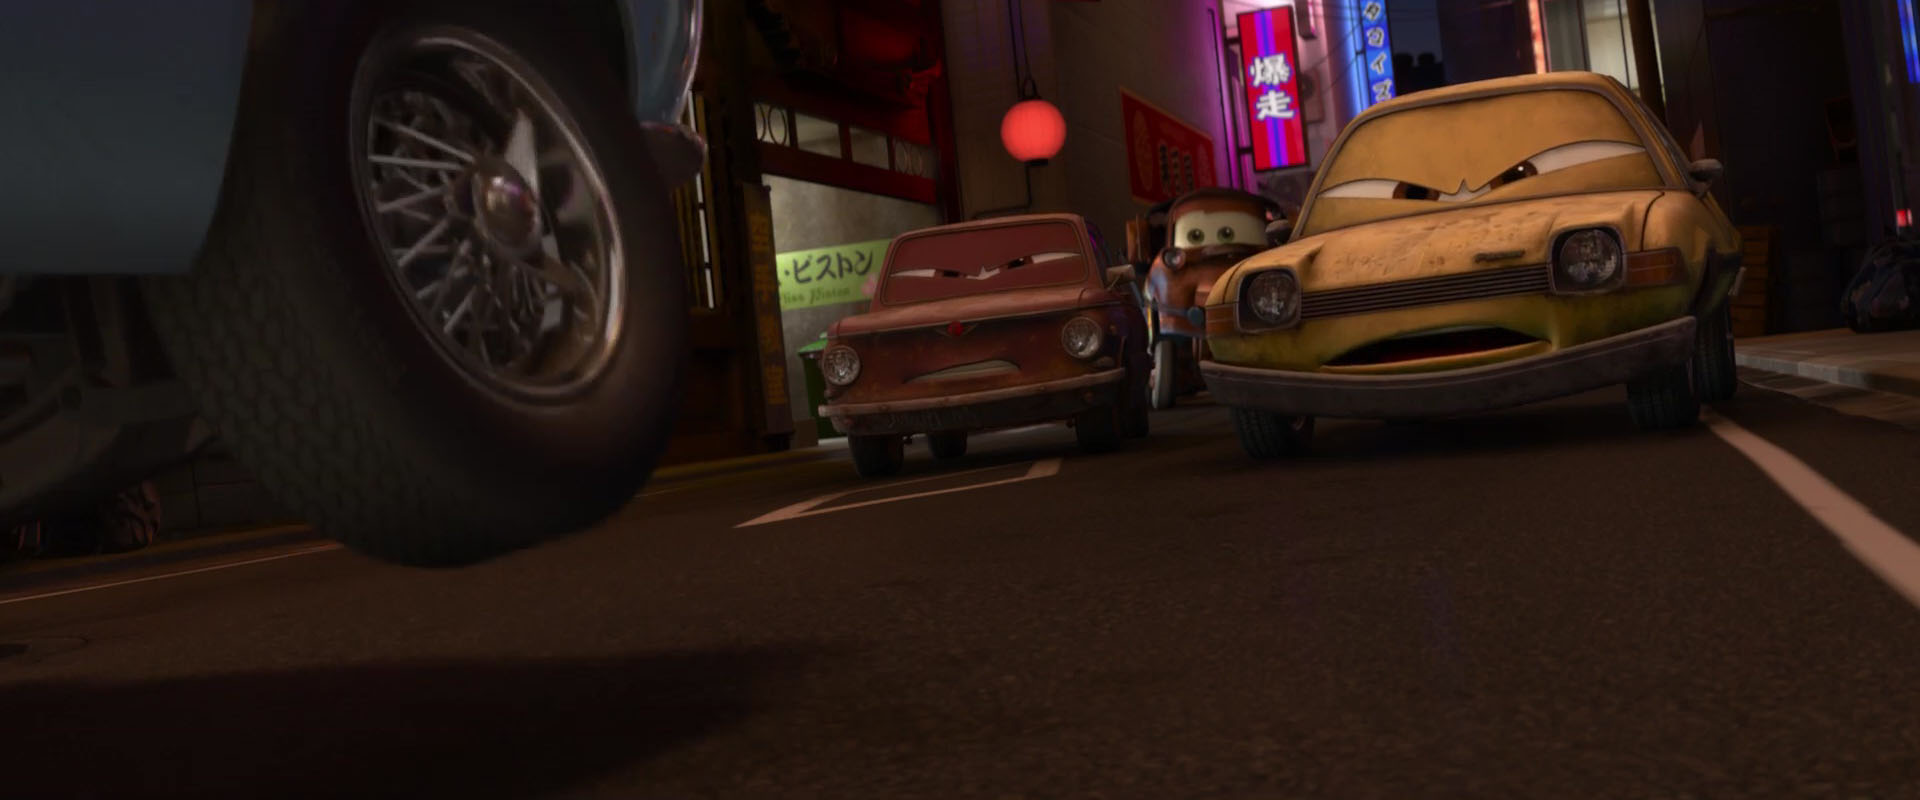 fred pacer personnage character pixar disney cars 2